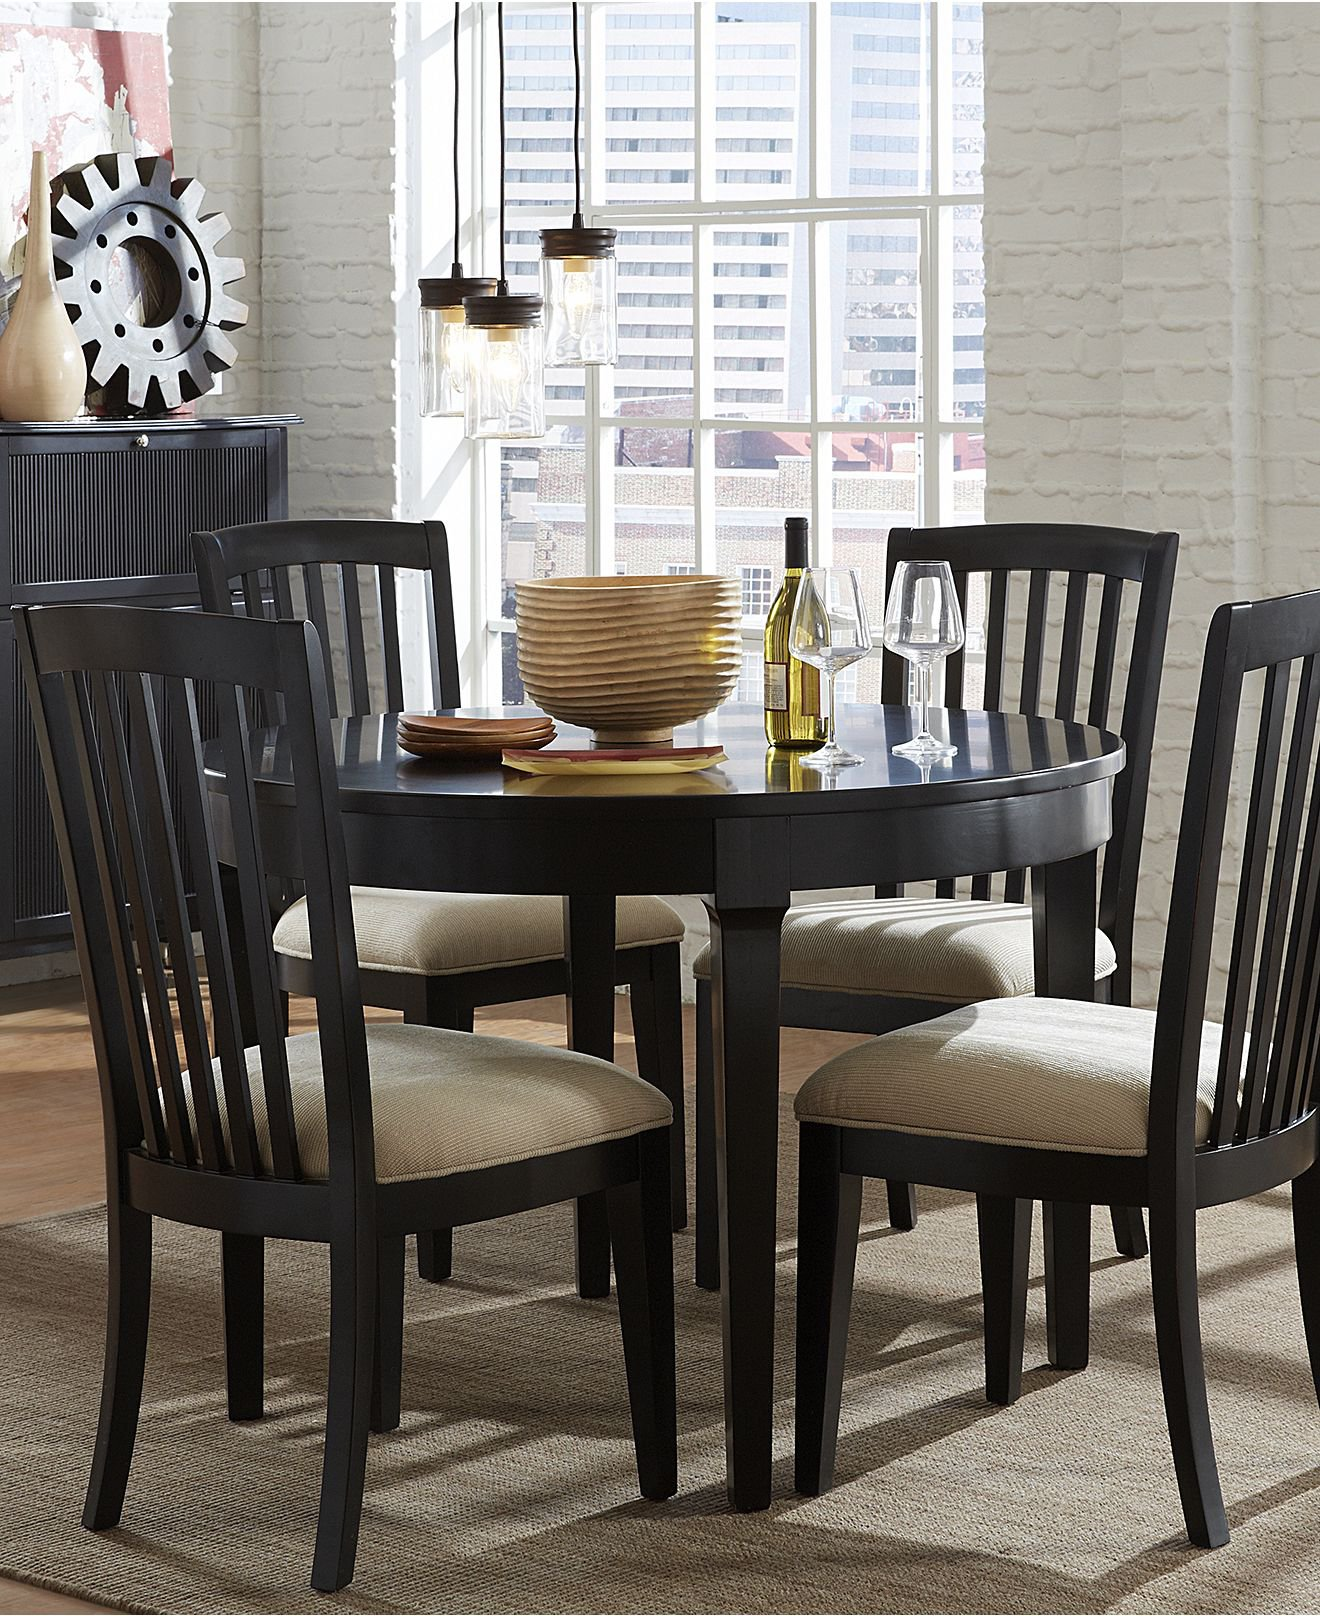 Captiva Round Dining Room Furniture from Macys